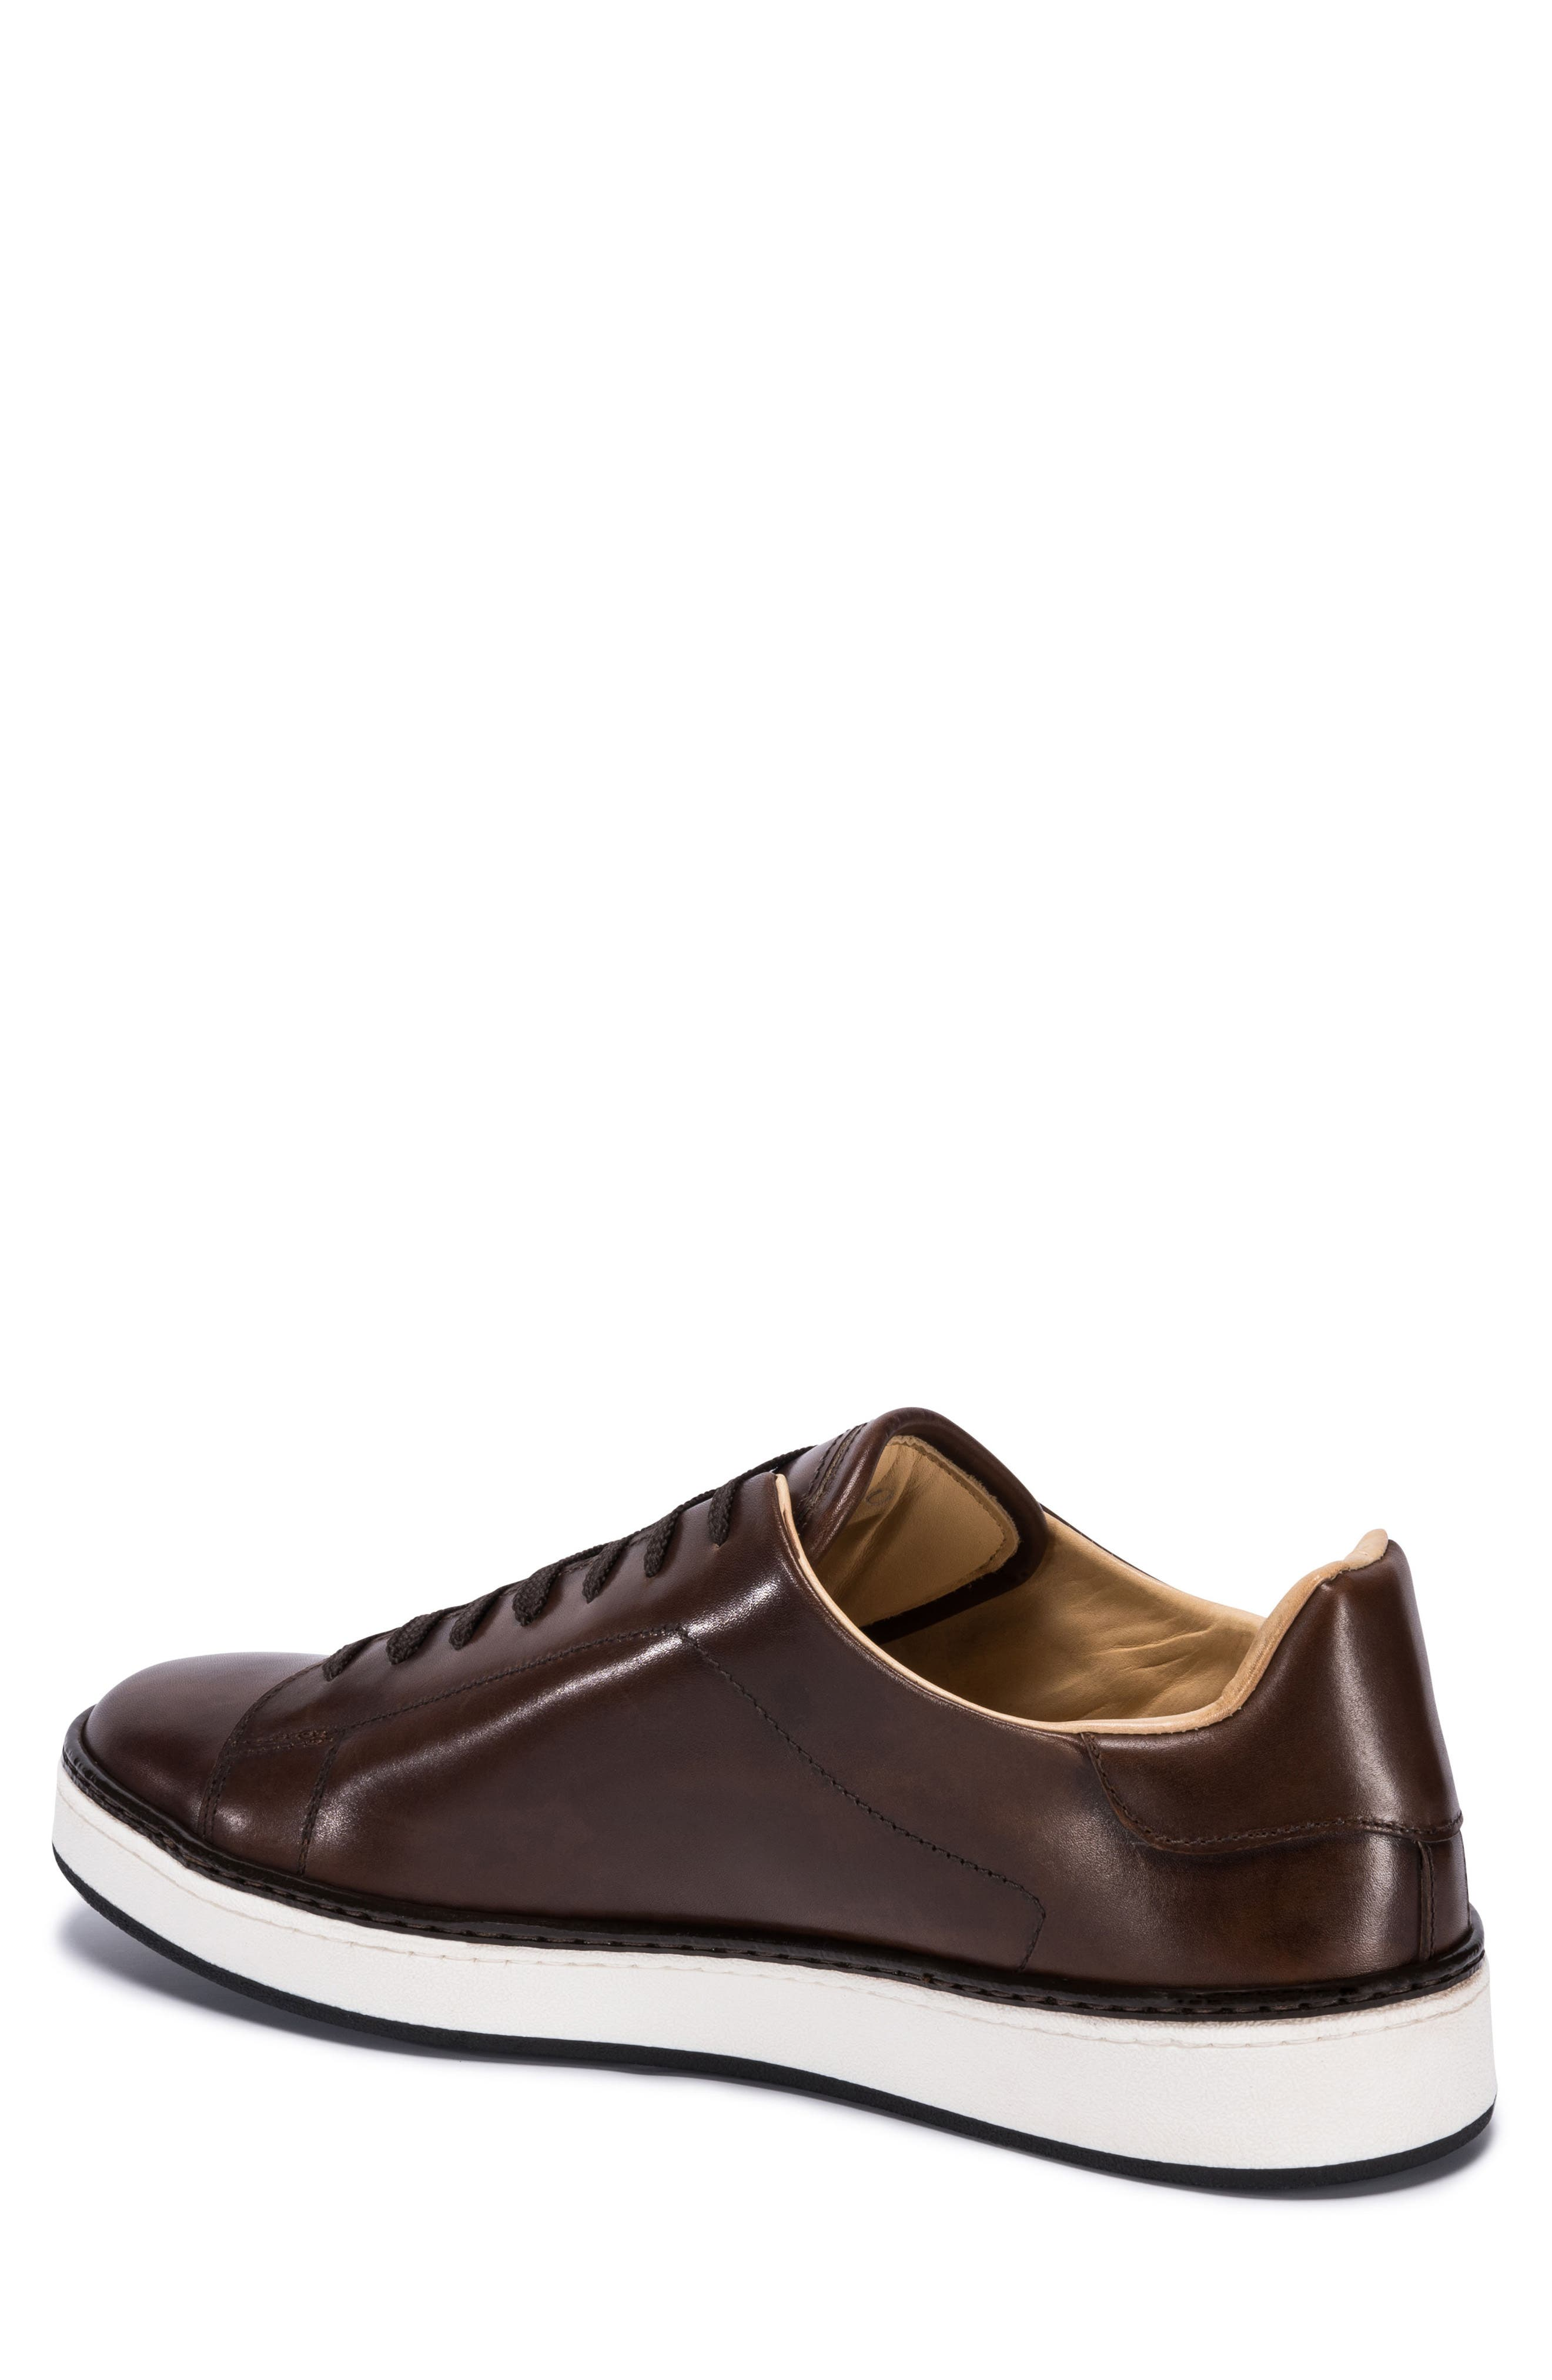 Firenze Low Top Sneaker,                             Alternate thumbnail 2, color,                             BURGUNDY LEATHER